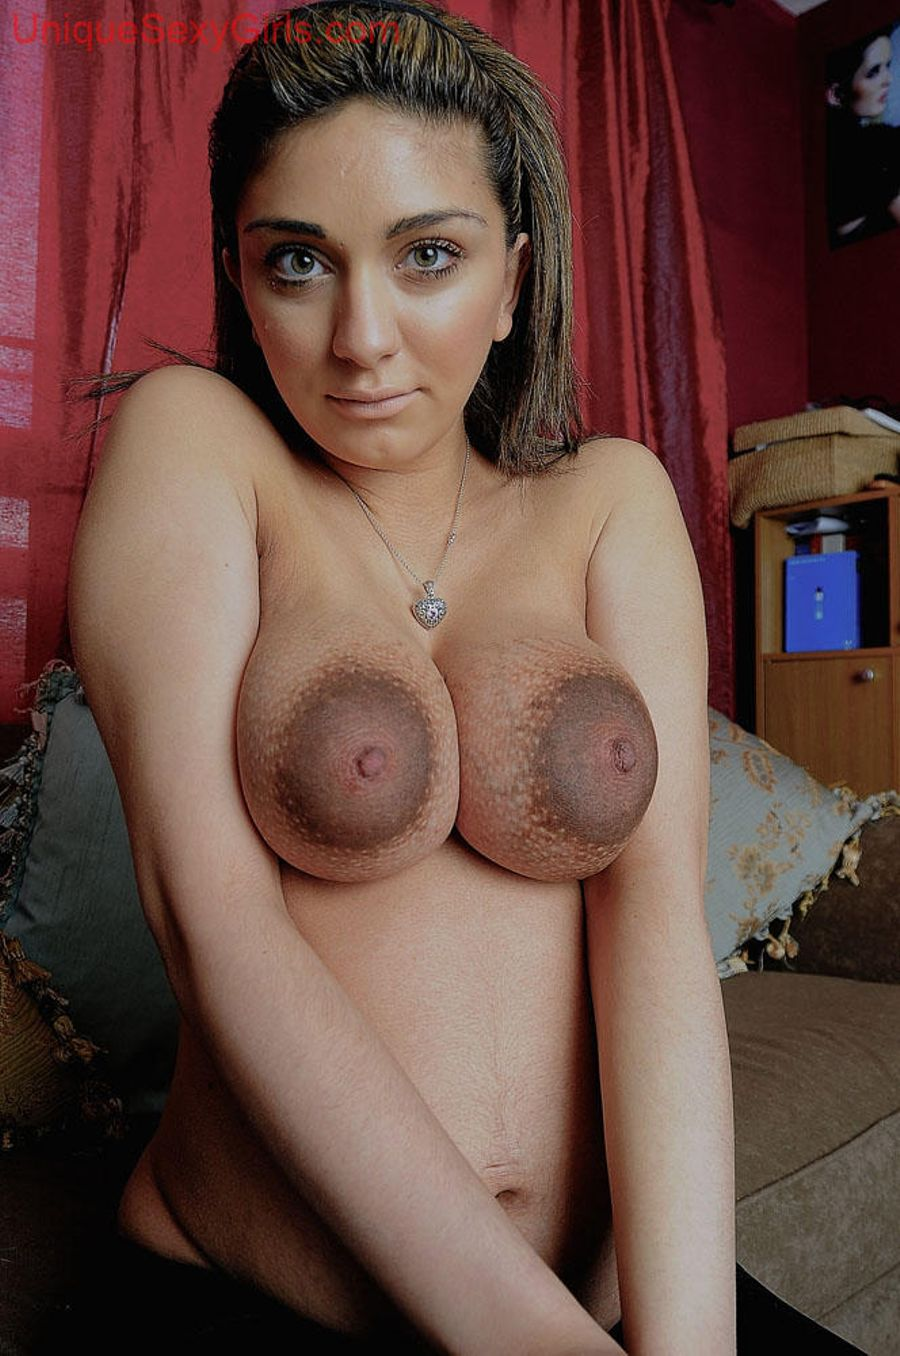 Pregnant boobs natural big